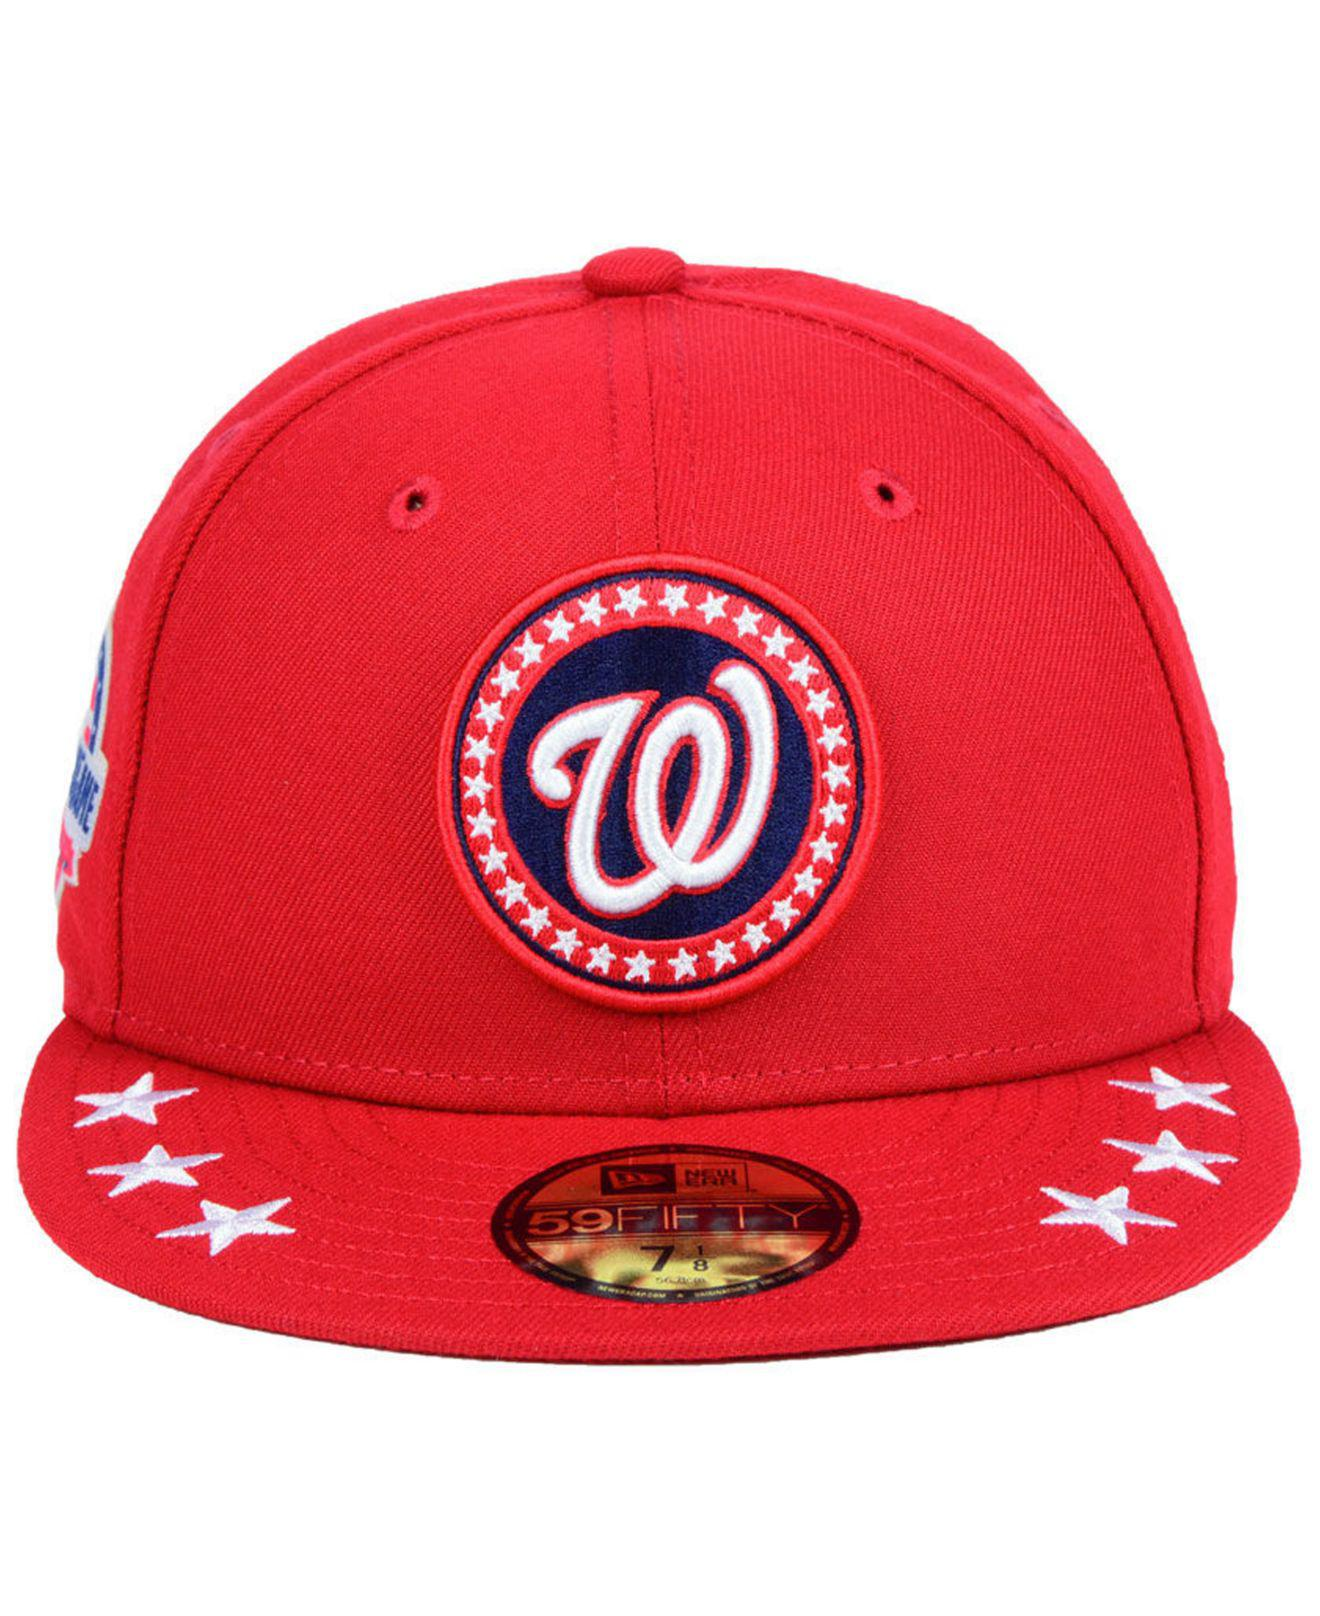 d7302a85cf0a3 ... denmark lyst ktz washington nationals all star workout 59fifty fitted cap  2018 in red for men